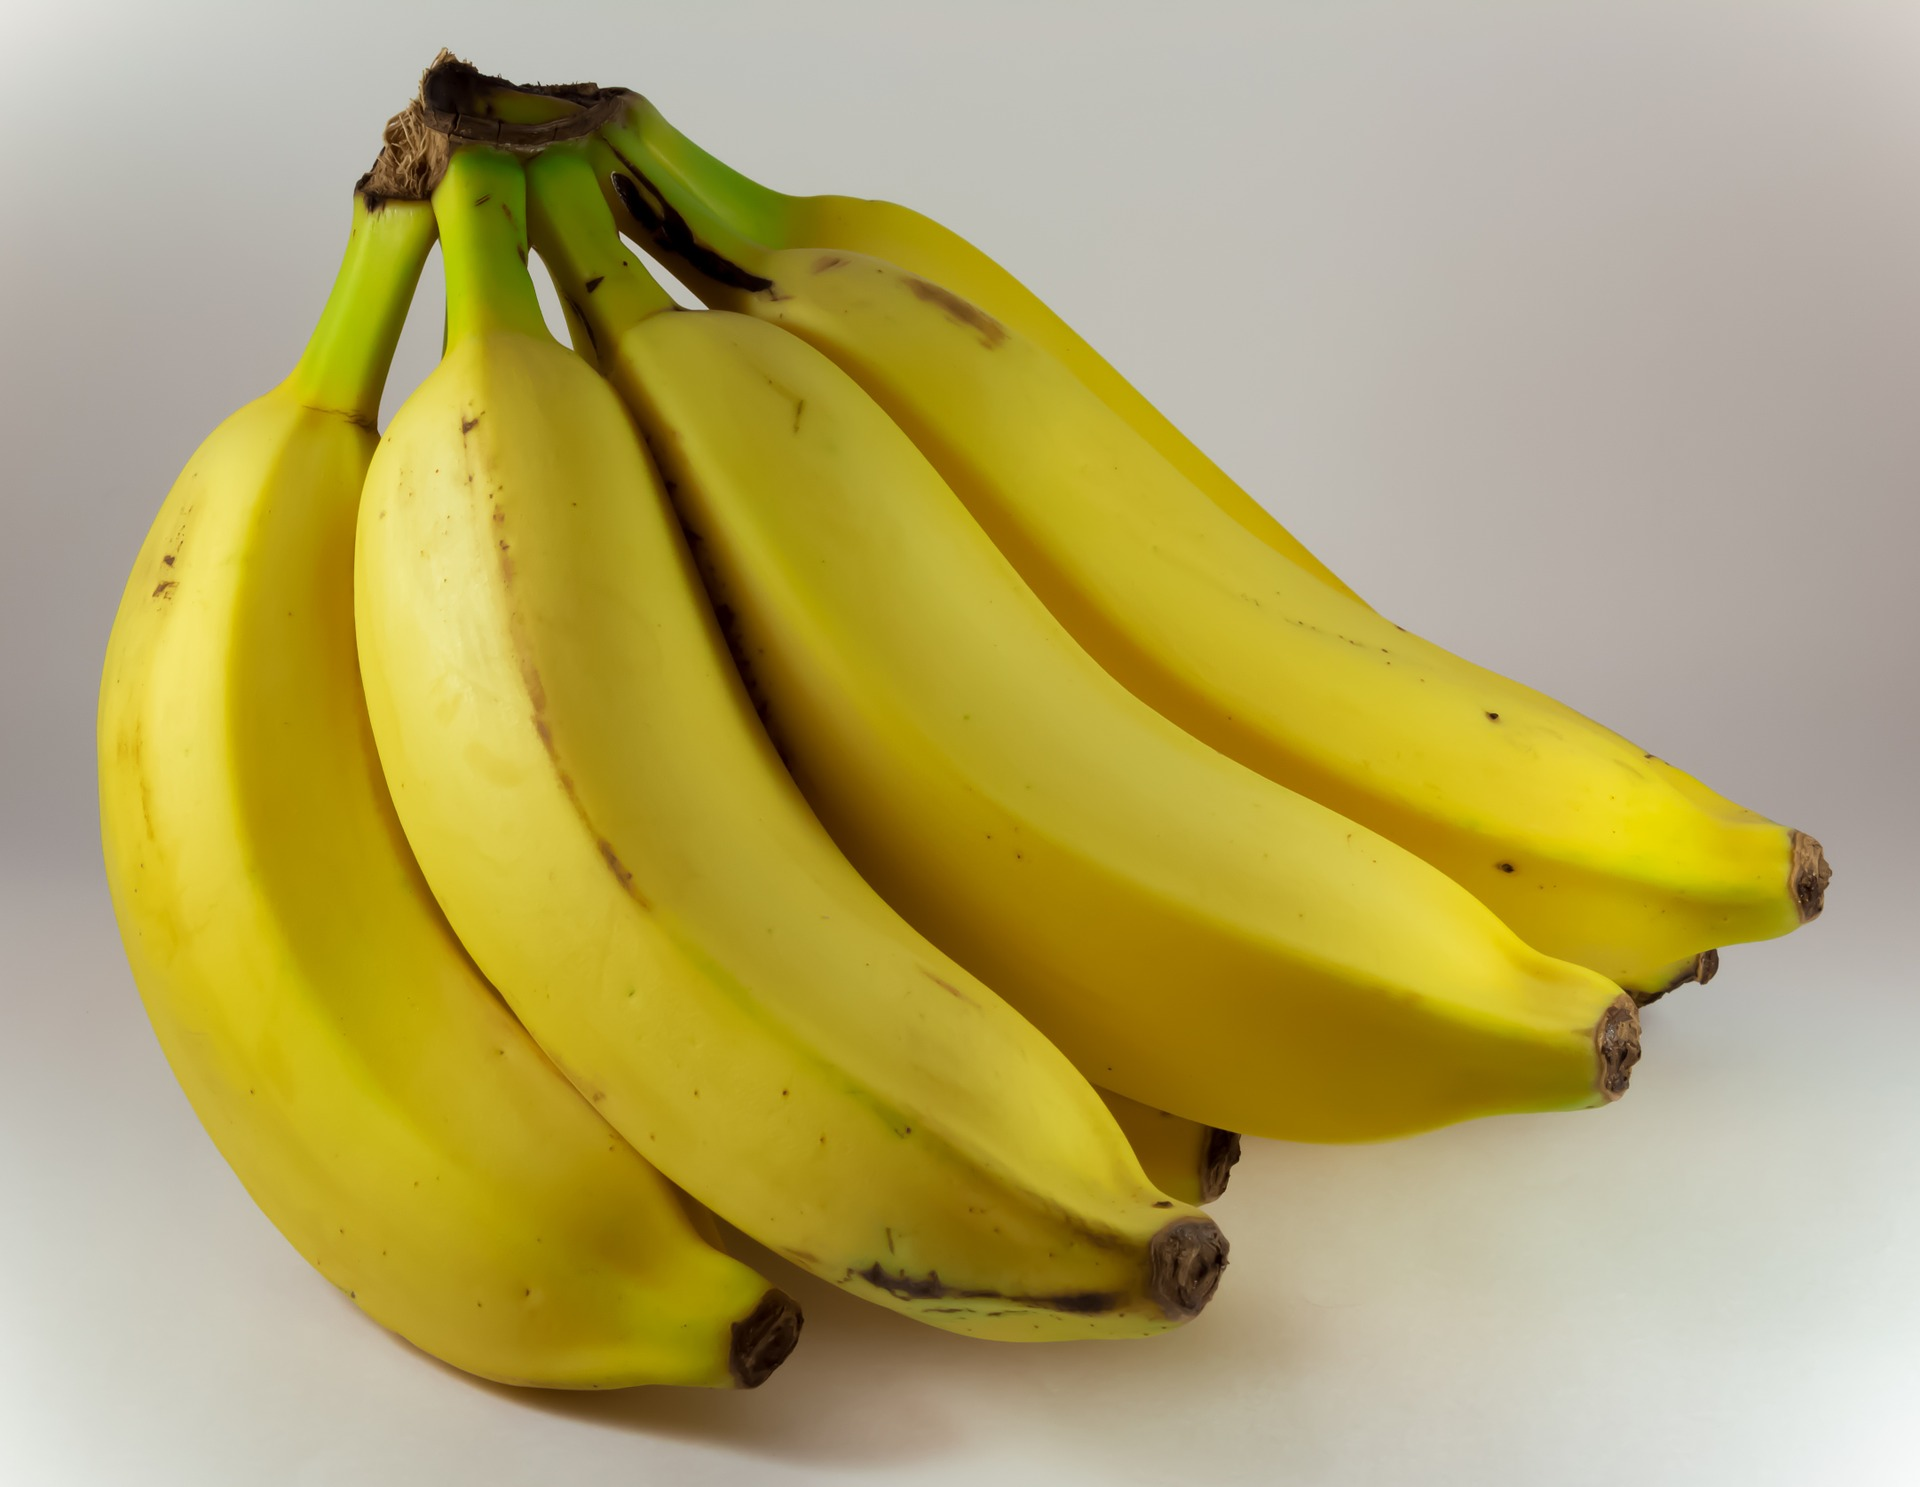 Bananas Health Benefits